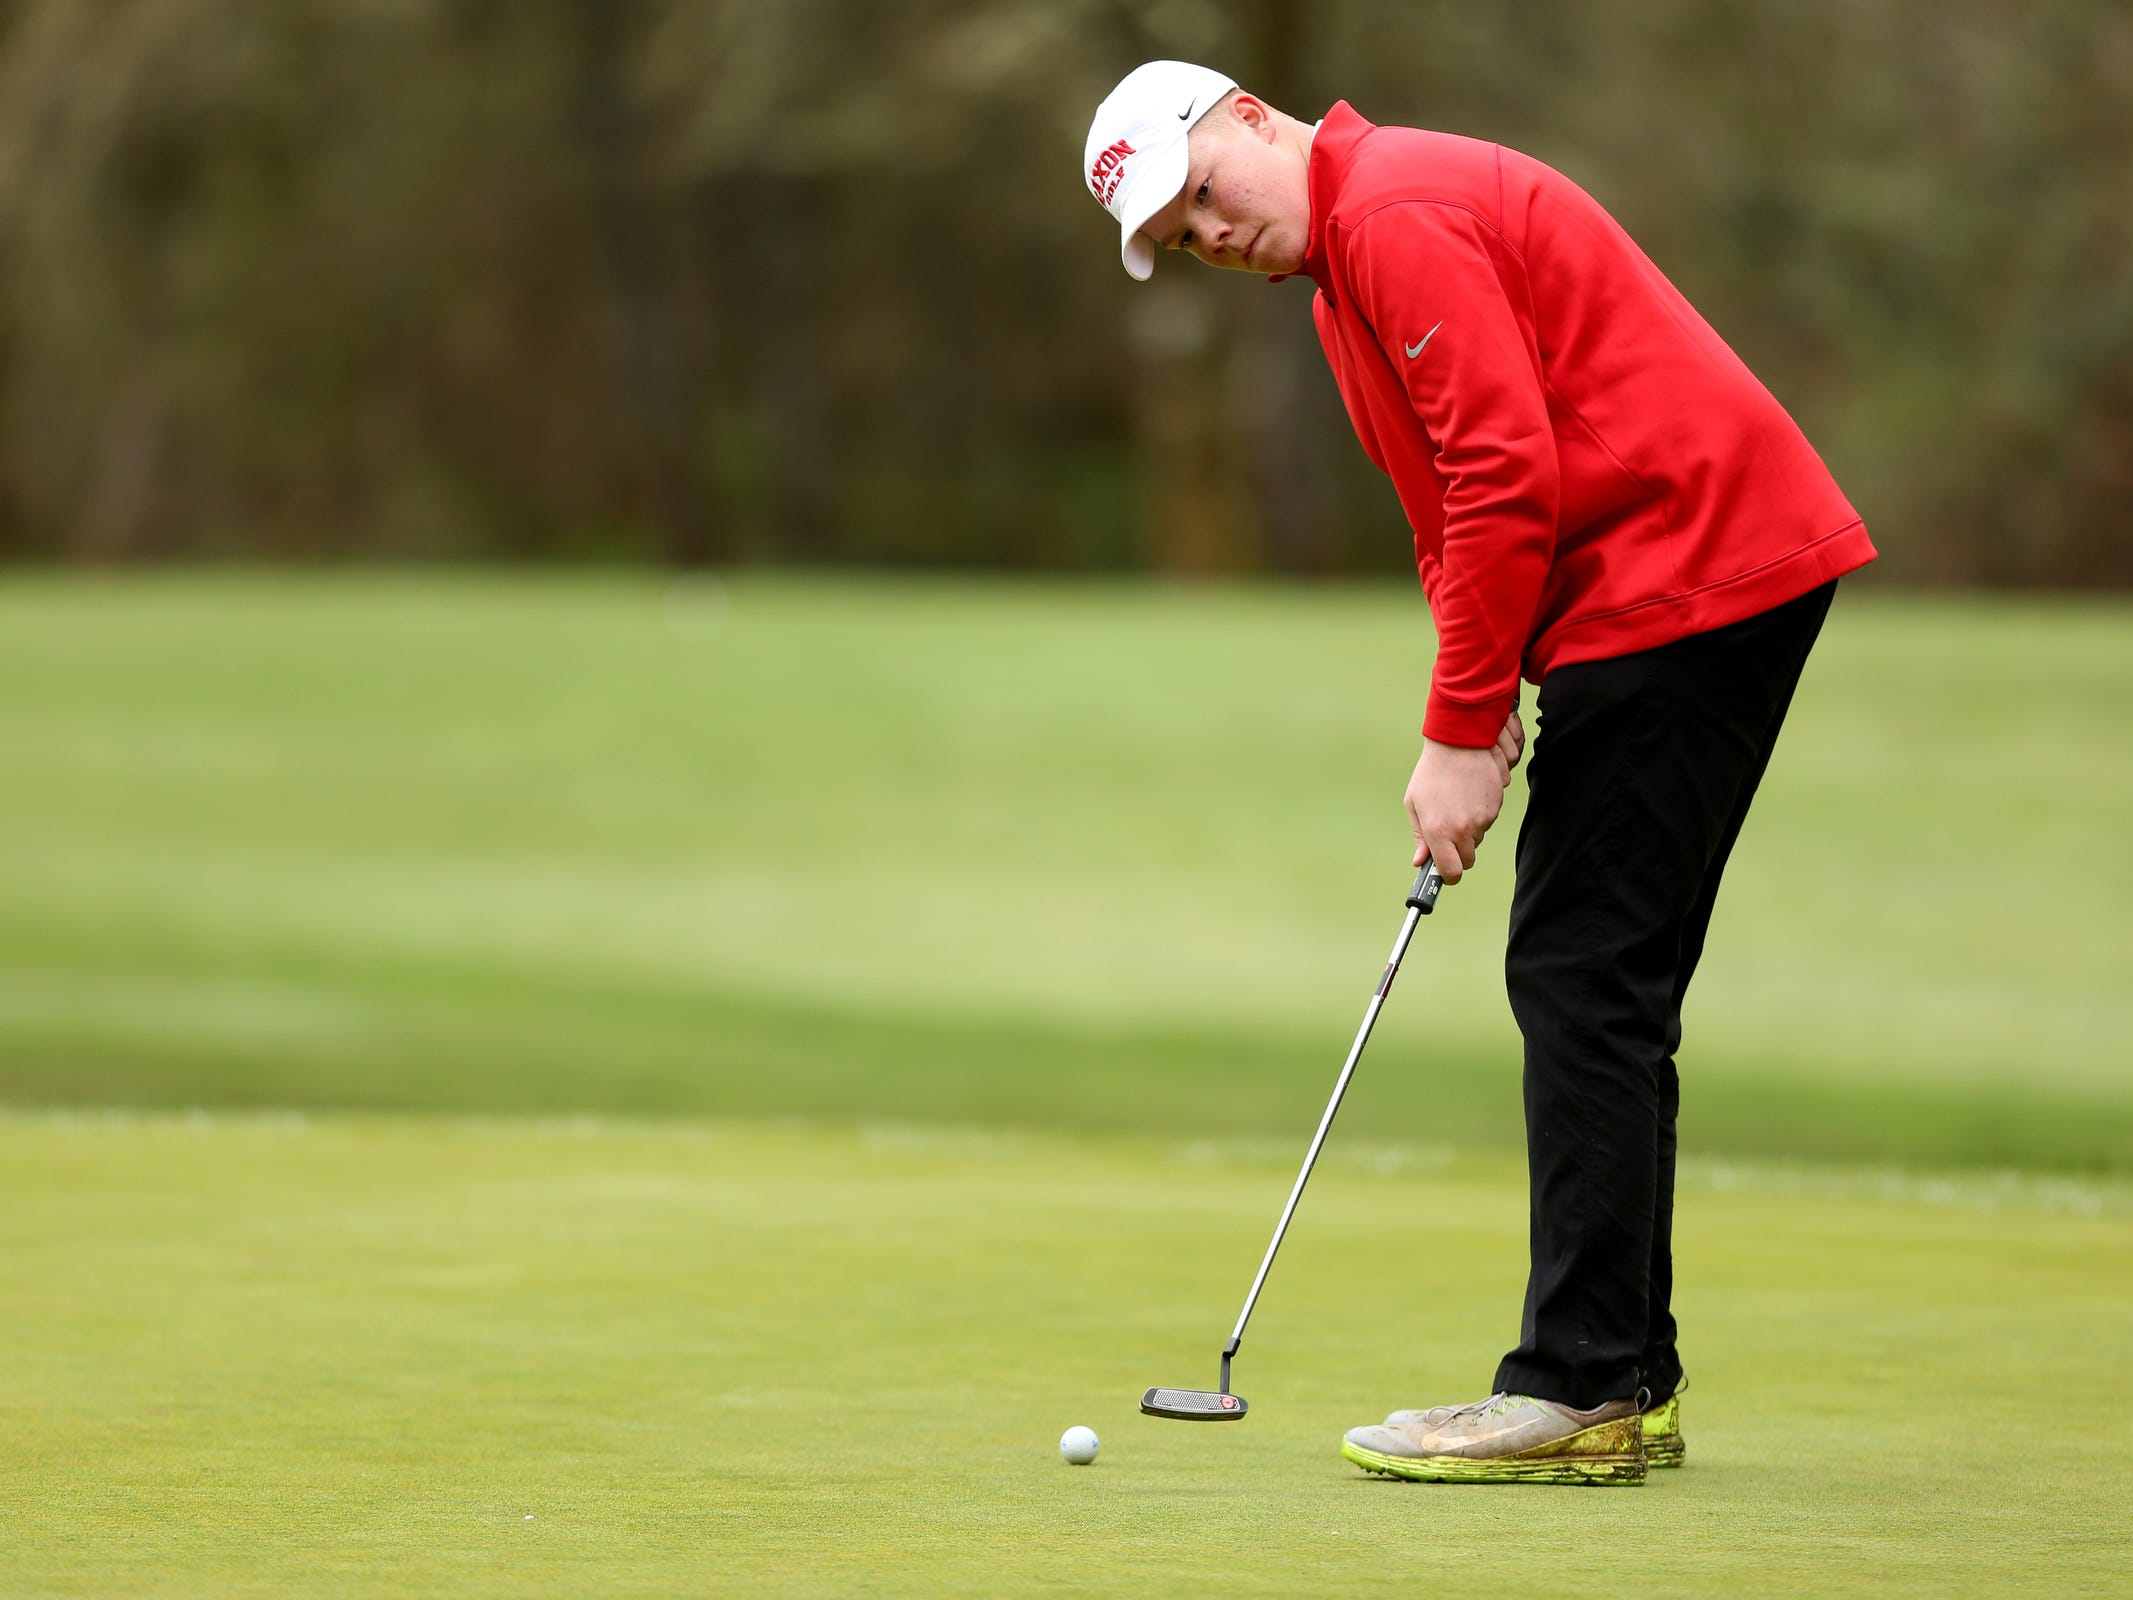 South Salem's Lucas Paul putts during a Mountain Valley Conference league high school golf match at Creekside Golf Club in Salem on April 15, 2019.